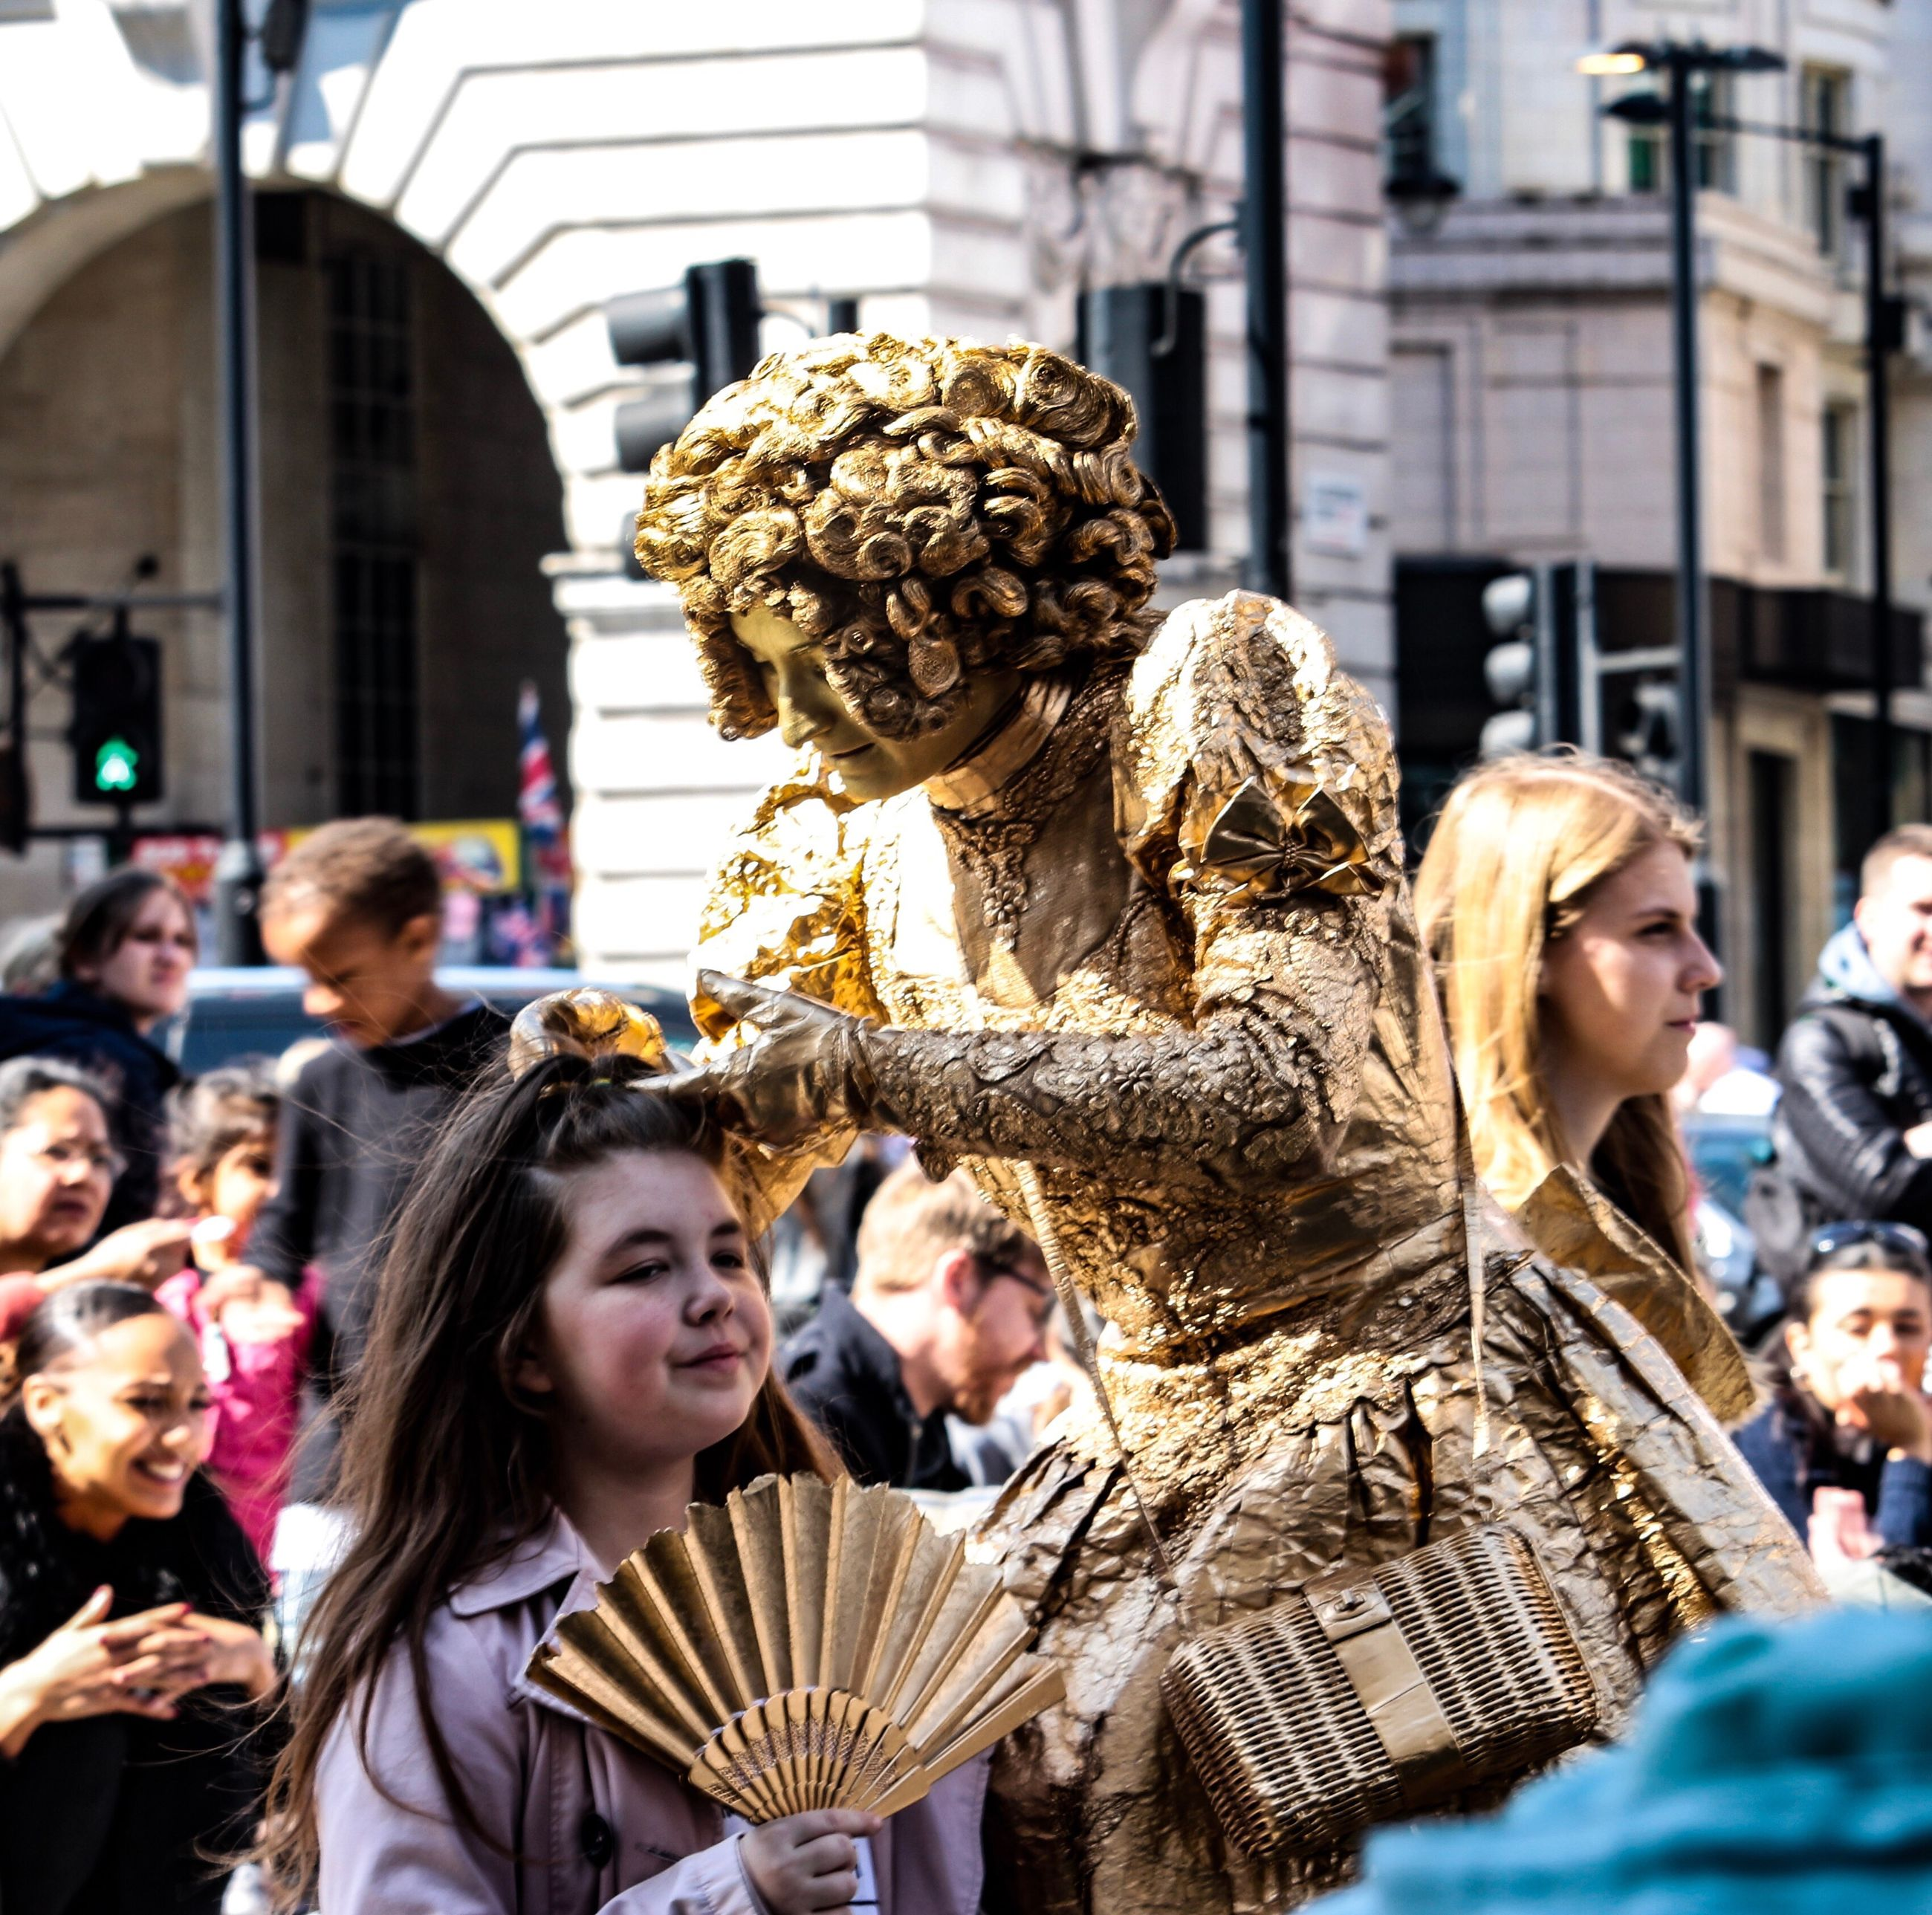 architecture, city, built structure, building exterior, statue, real people, leisure activity, medium group of people, men, outdoors, sculpture, musician, people, day, period costume, adult, adults only